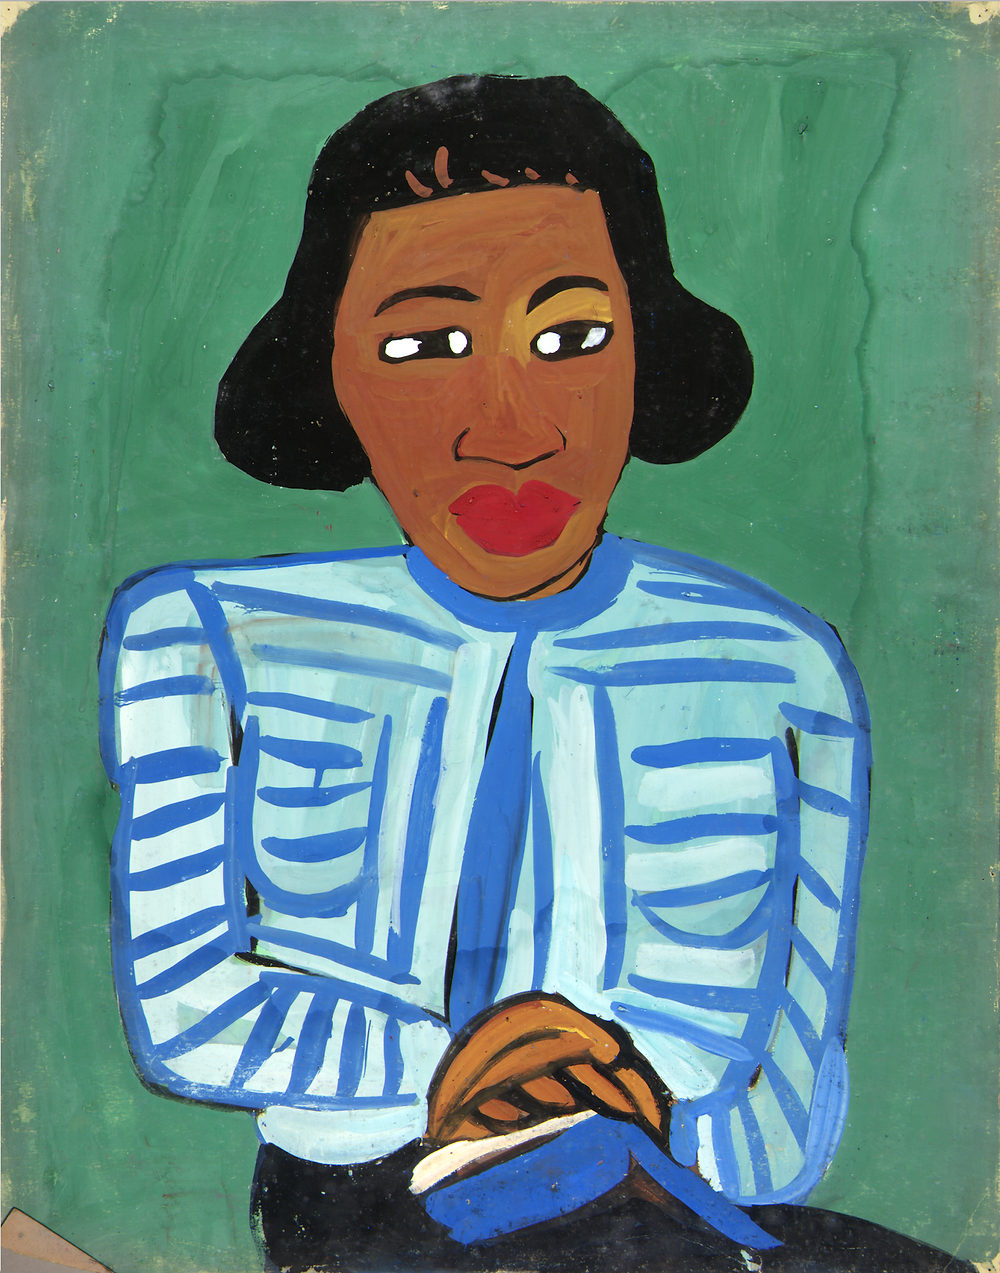 William H. Johnson, Portrait of Woman with Blue and White Striped Blouse, on view at the Wallach Art Gallery